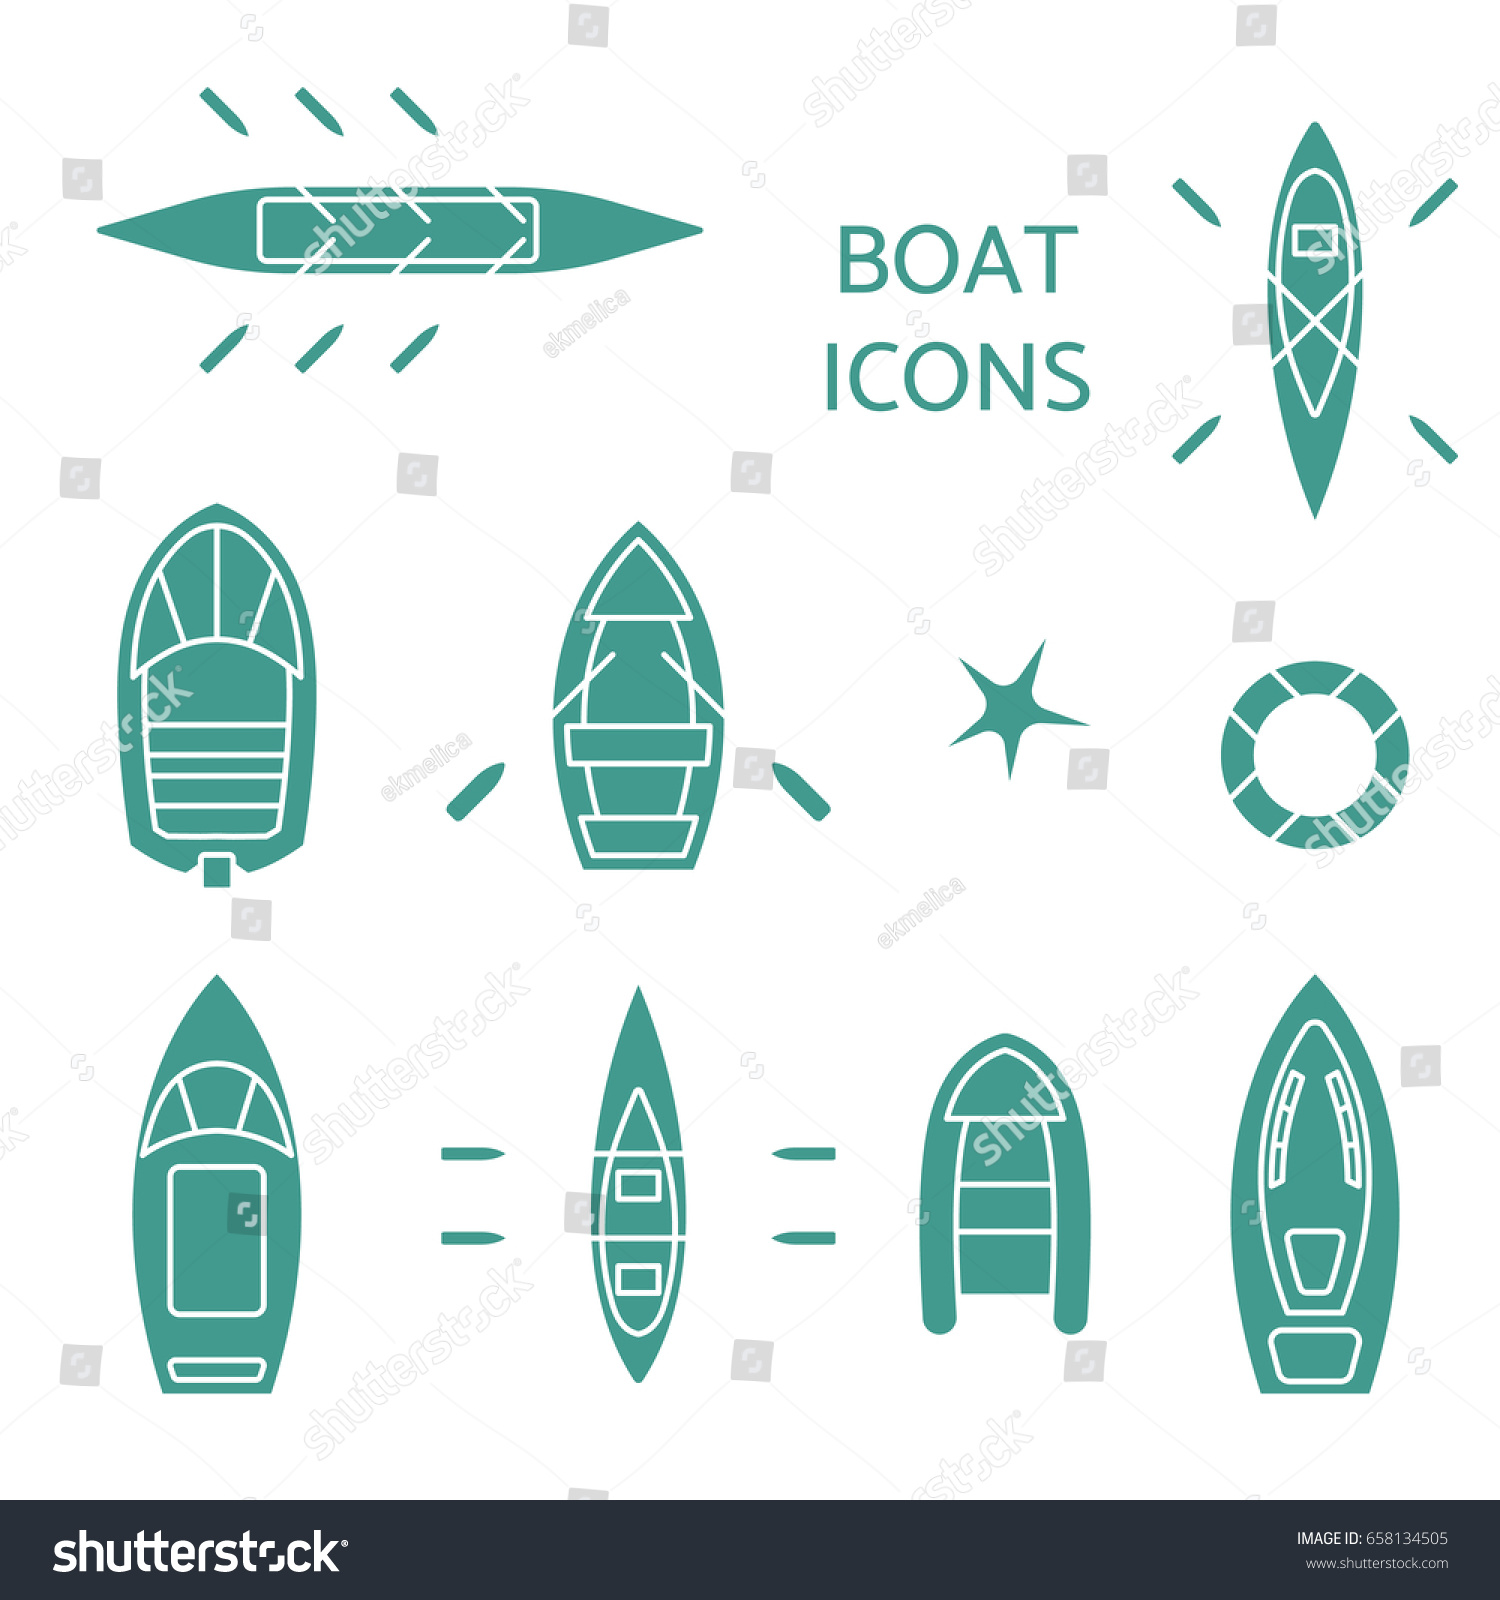 Boat Icons Set Top View Contour Stock Vector